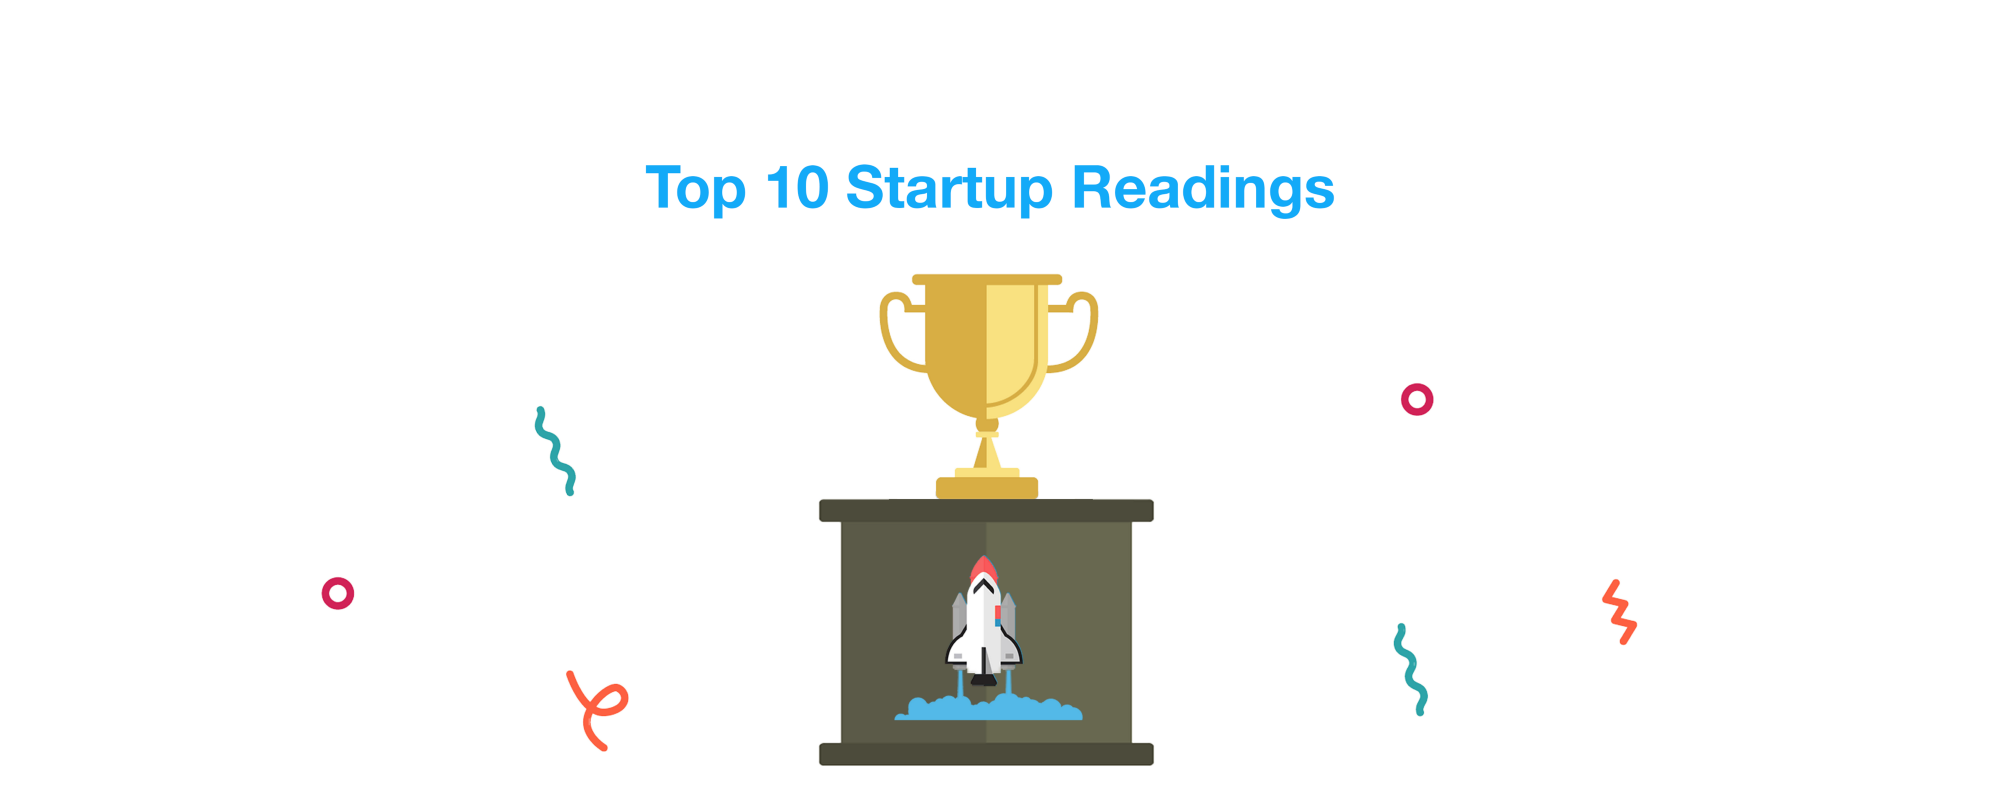 Top 10 Startup Readings to Make You a Better Founder.